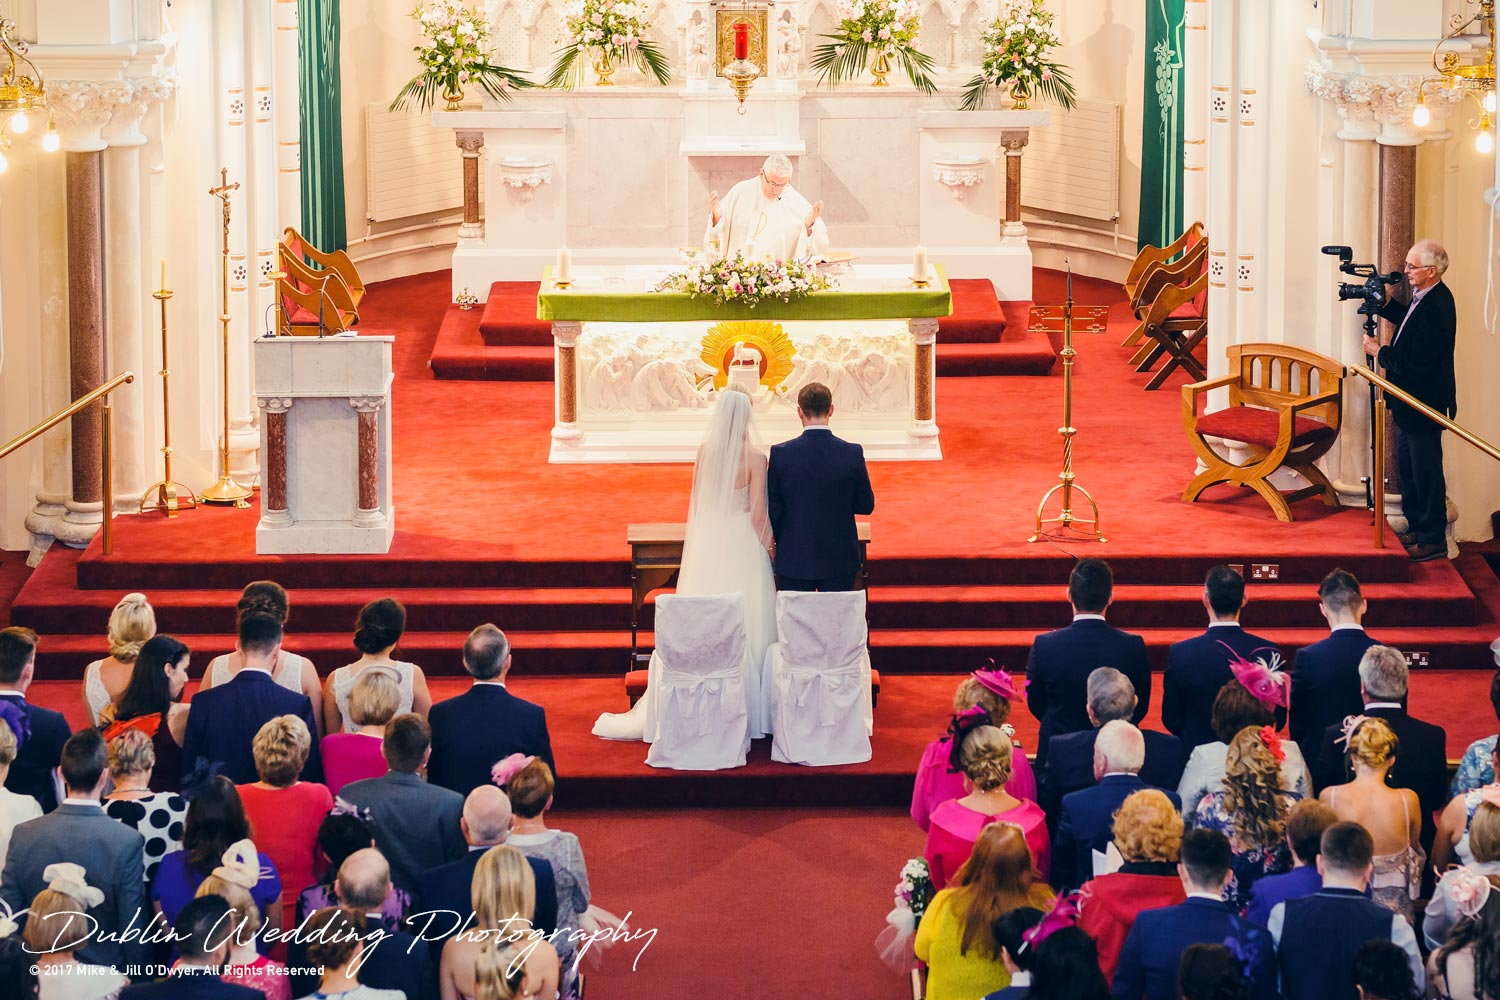 K Club, Kildare, Wedding Photographer, Dublin, view from the back of the church at the Bride and Groom standing together